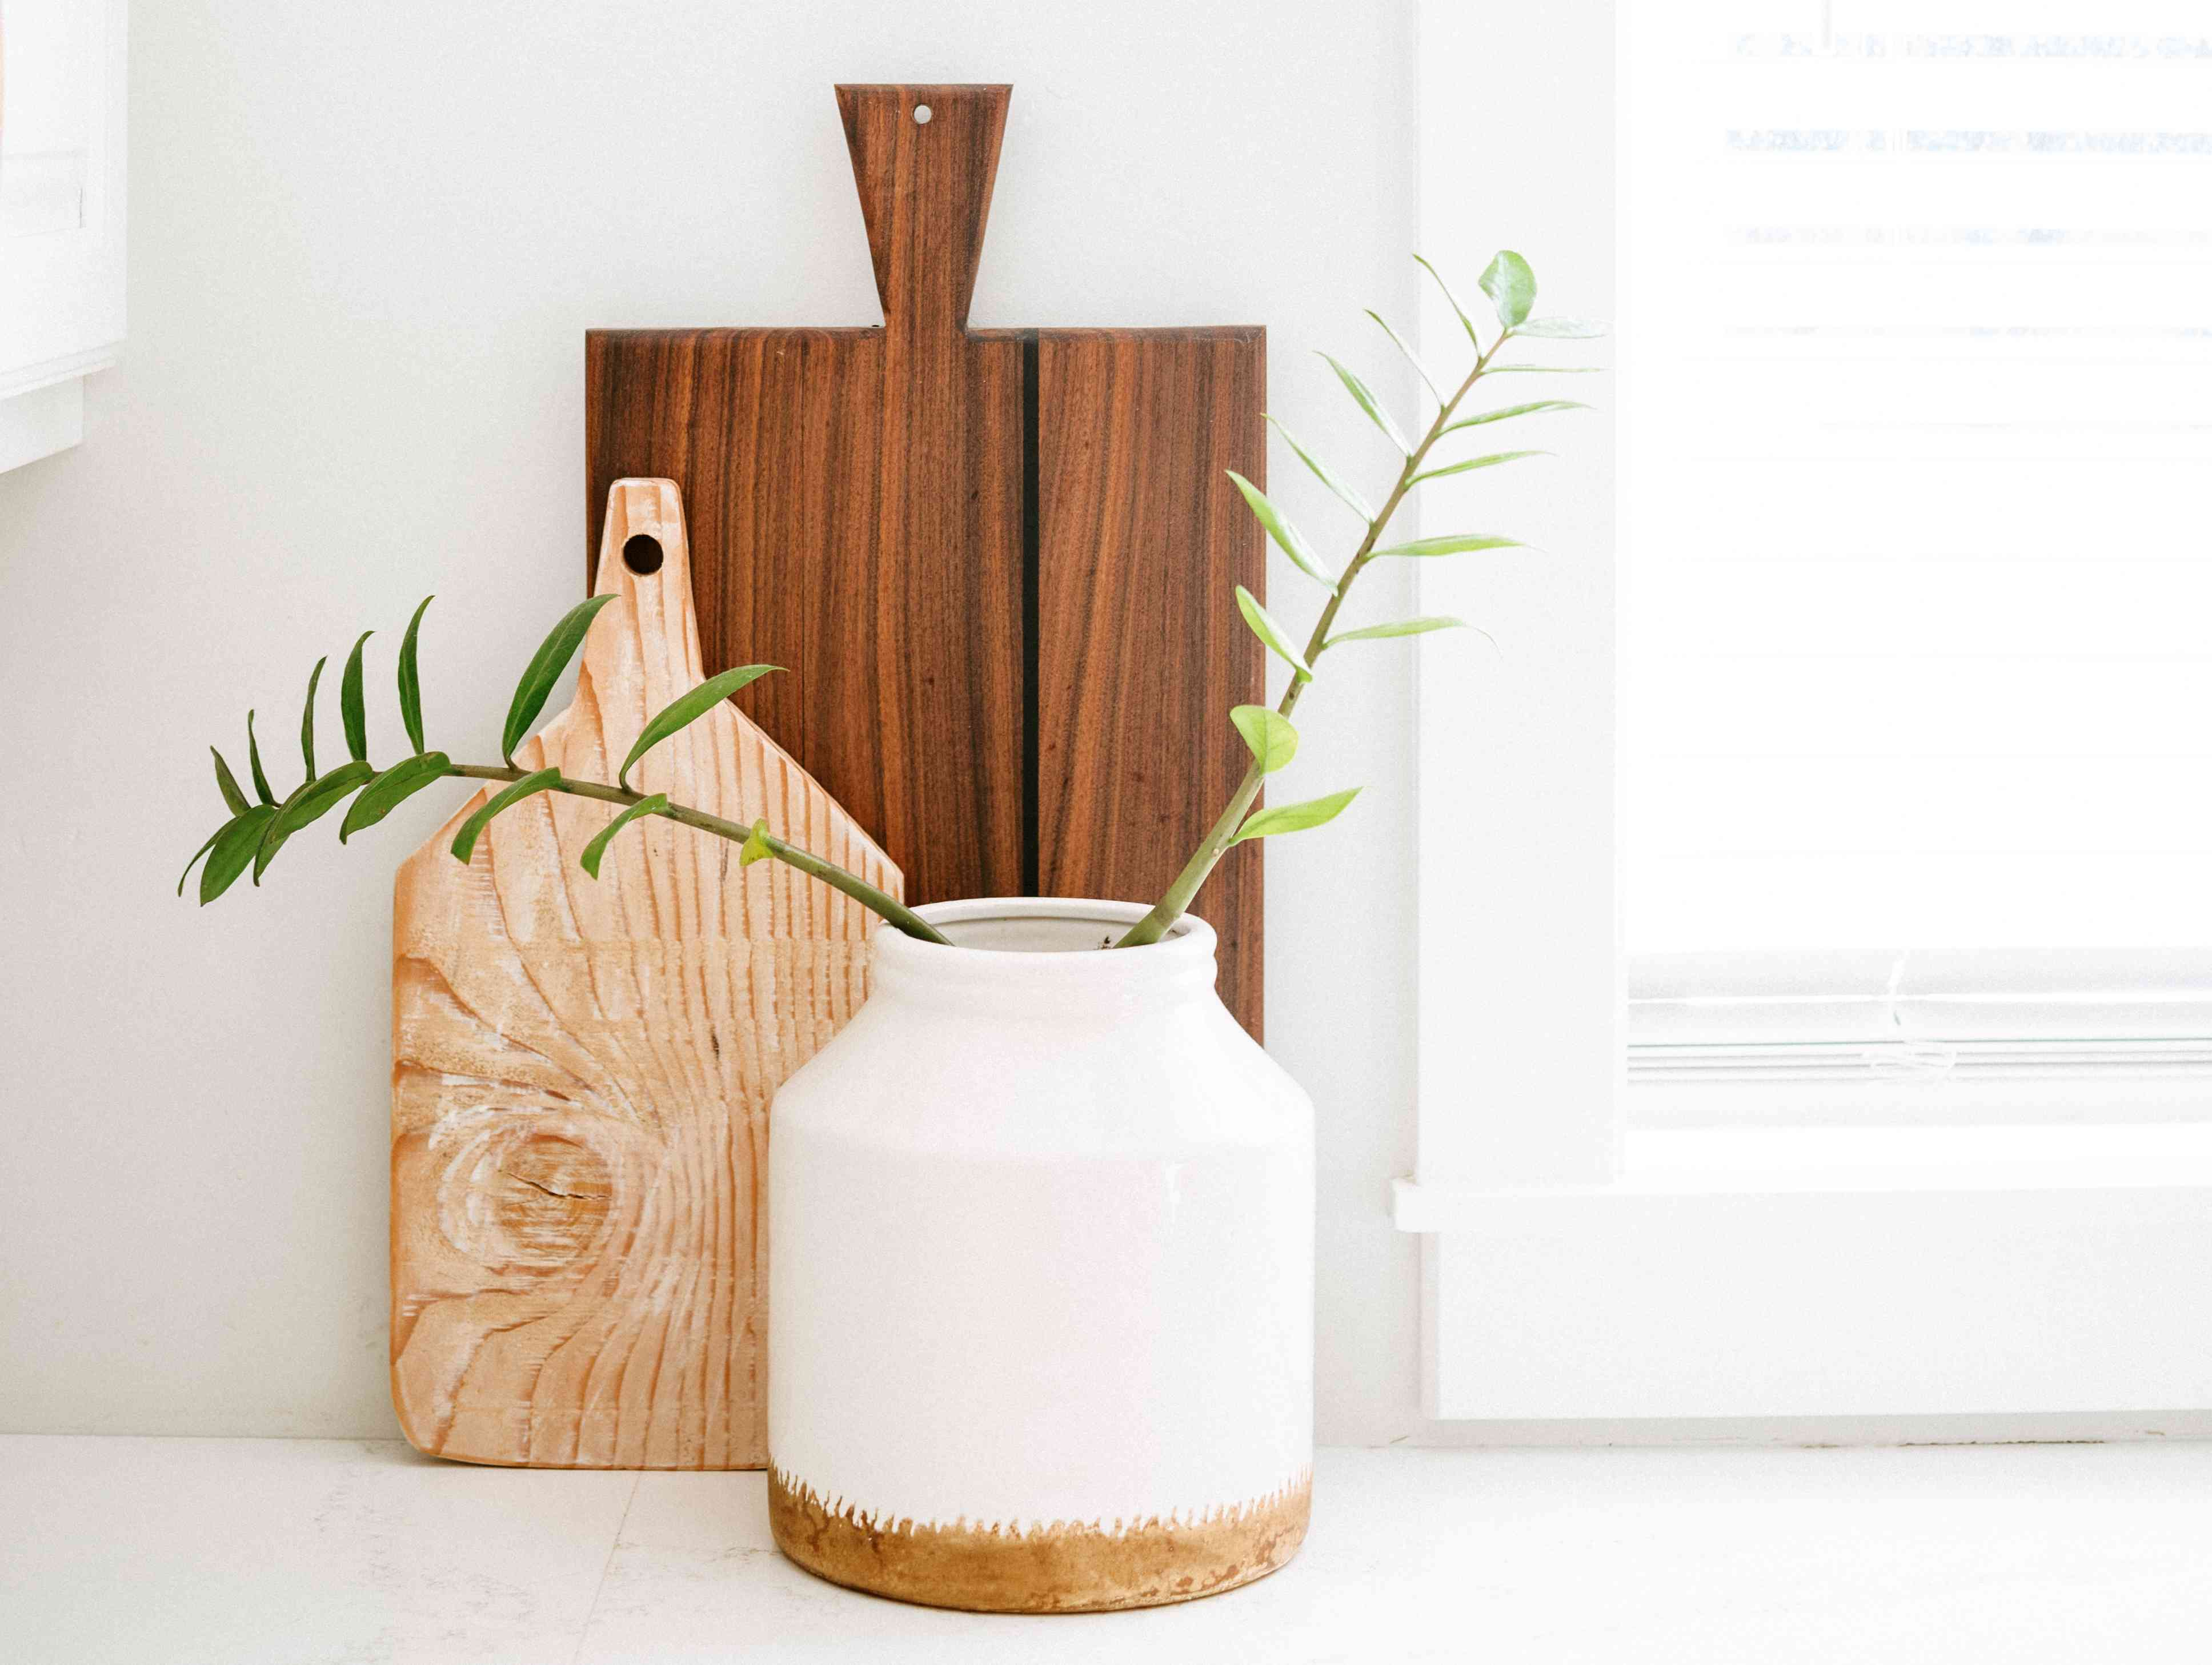 cutting boards artfully displayed on a counter